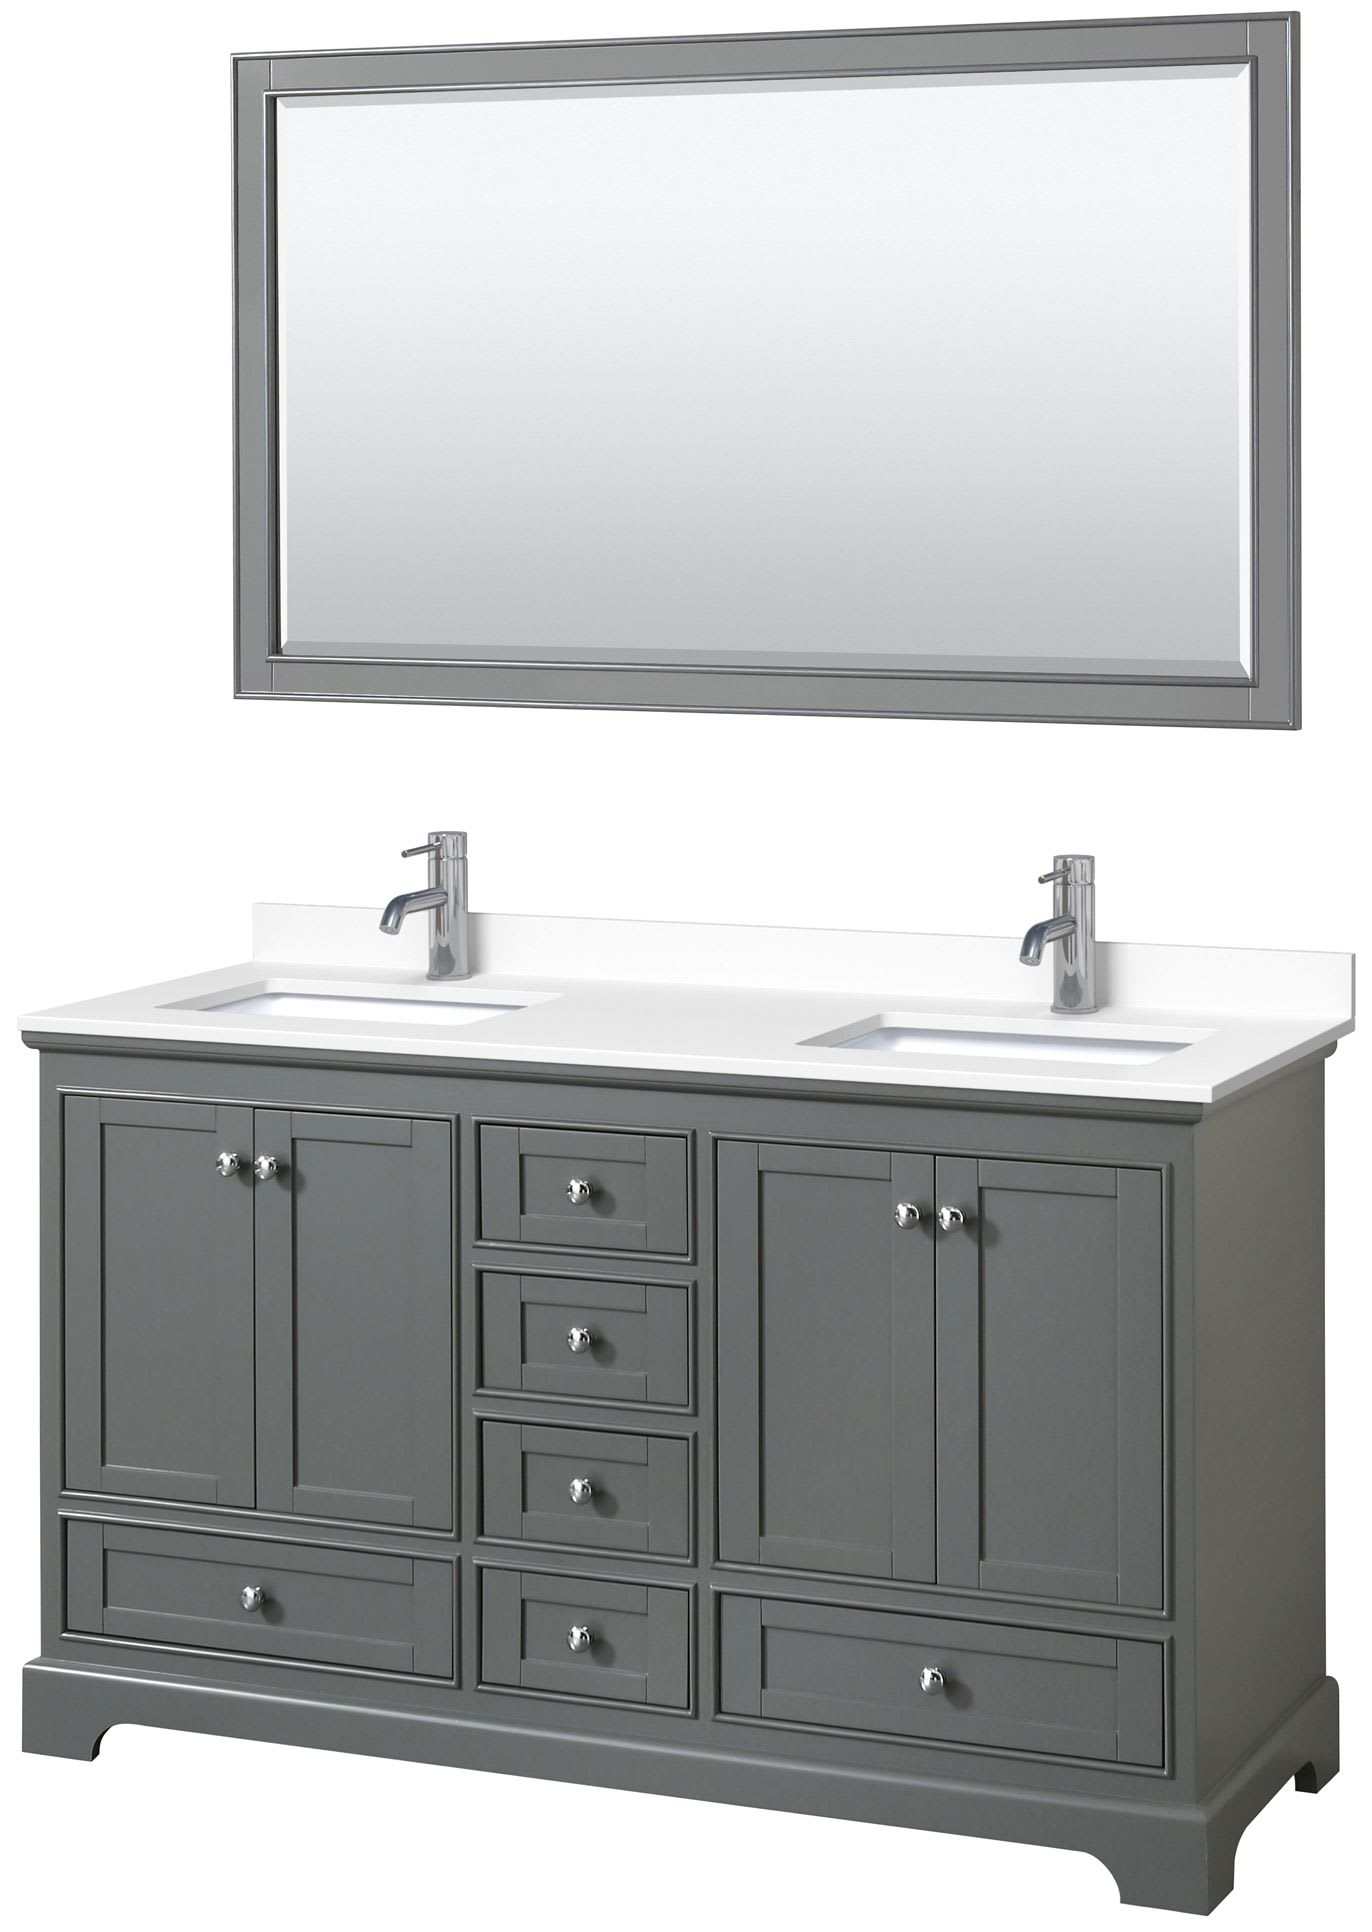 Wyndham Collection Wcs202060dkgc2unsm58 Dark Gray Light Vein Carrara Top Deborah 60 Inch Double Bathroom Vanity With Cultured Marble Countertop Undermount Square Sinks 58 Inch Mirror Faucet Com